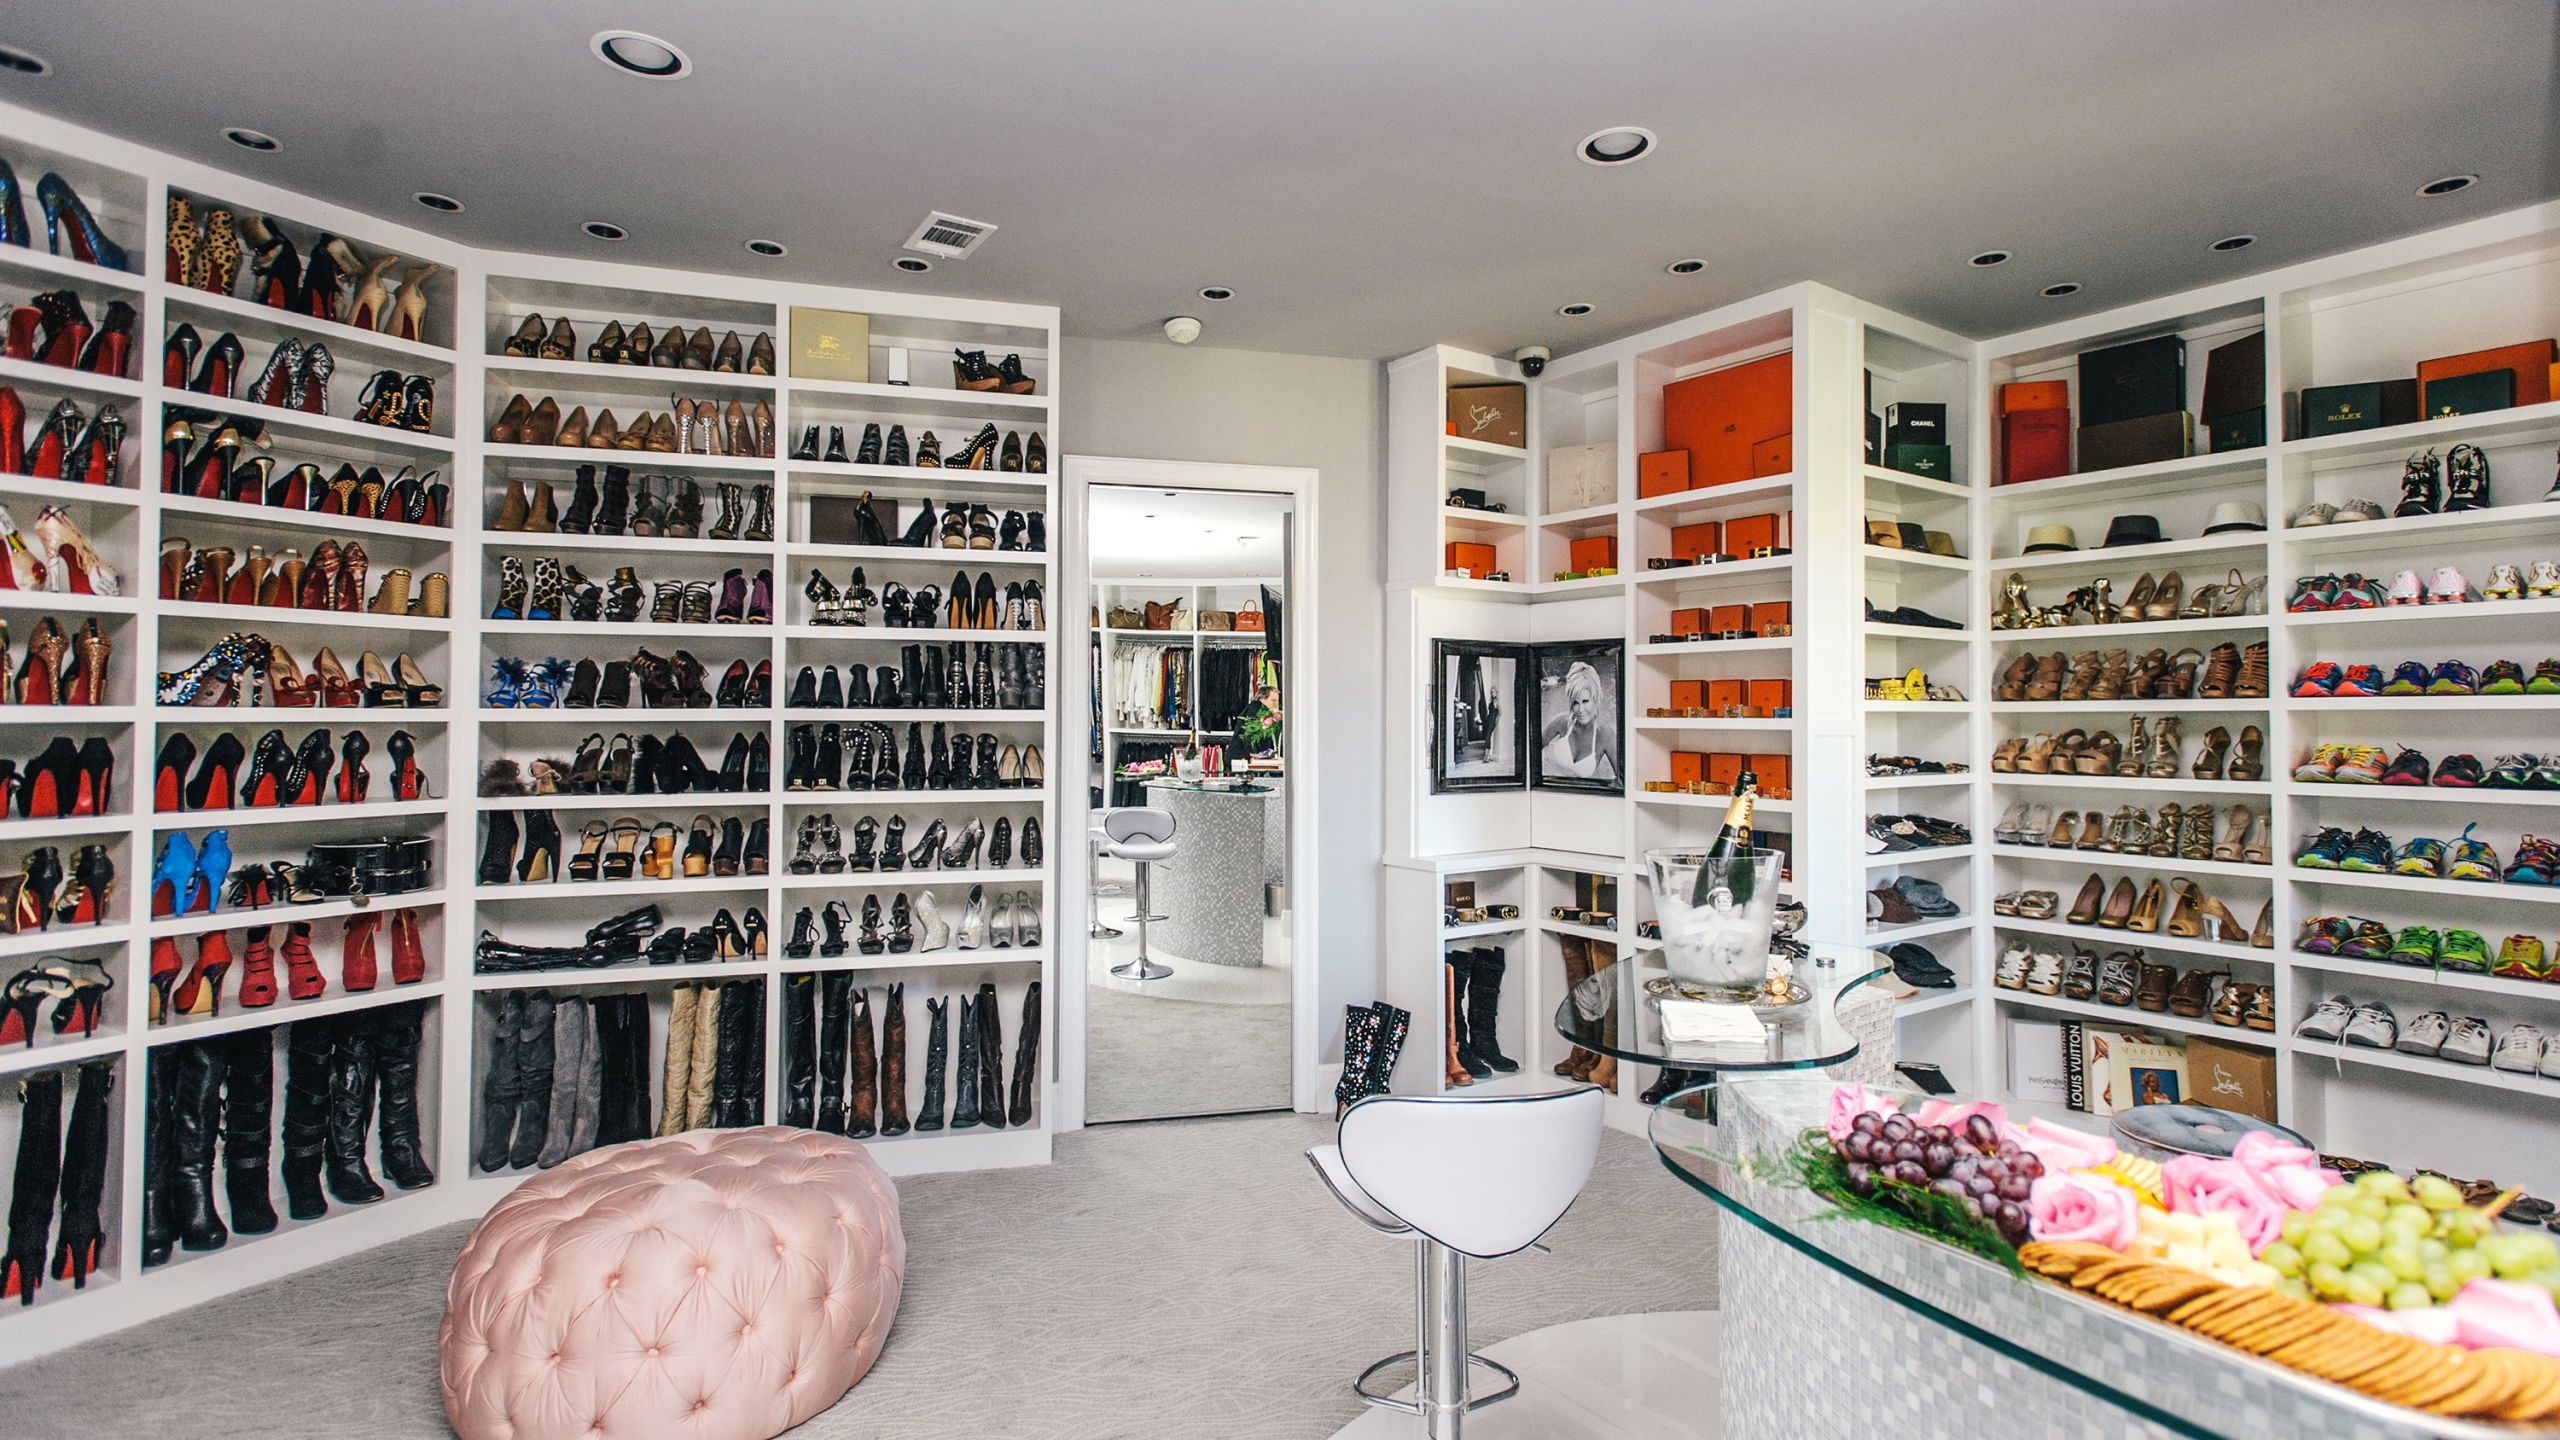 The Biggest Wardrobe Closet In World